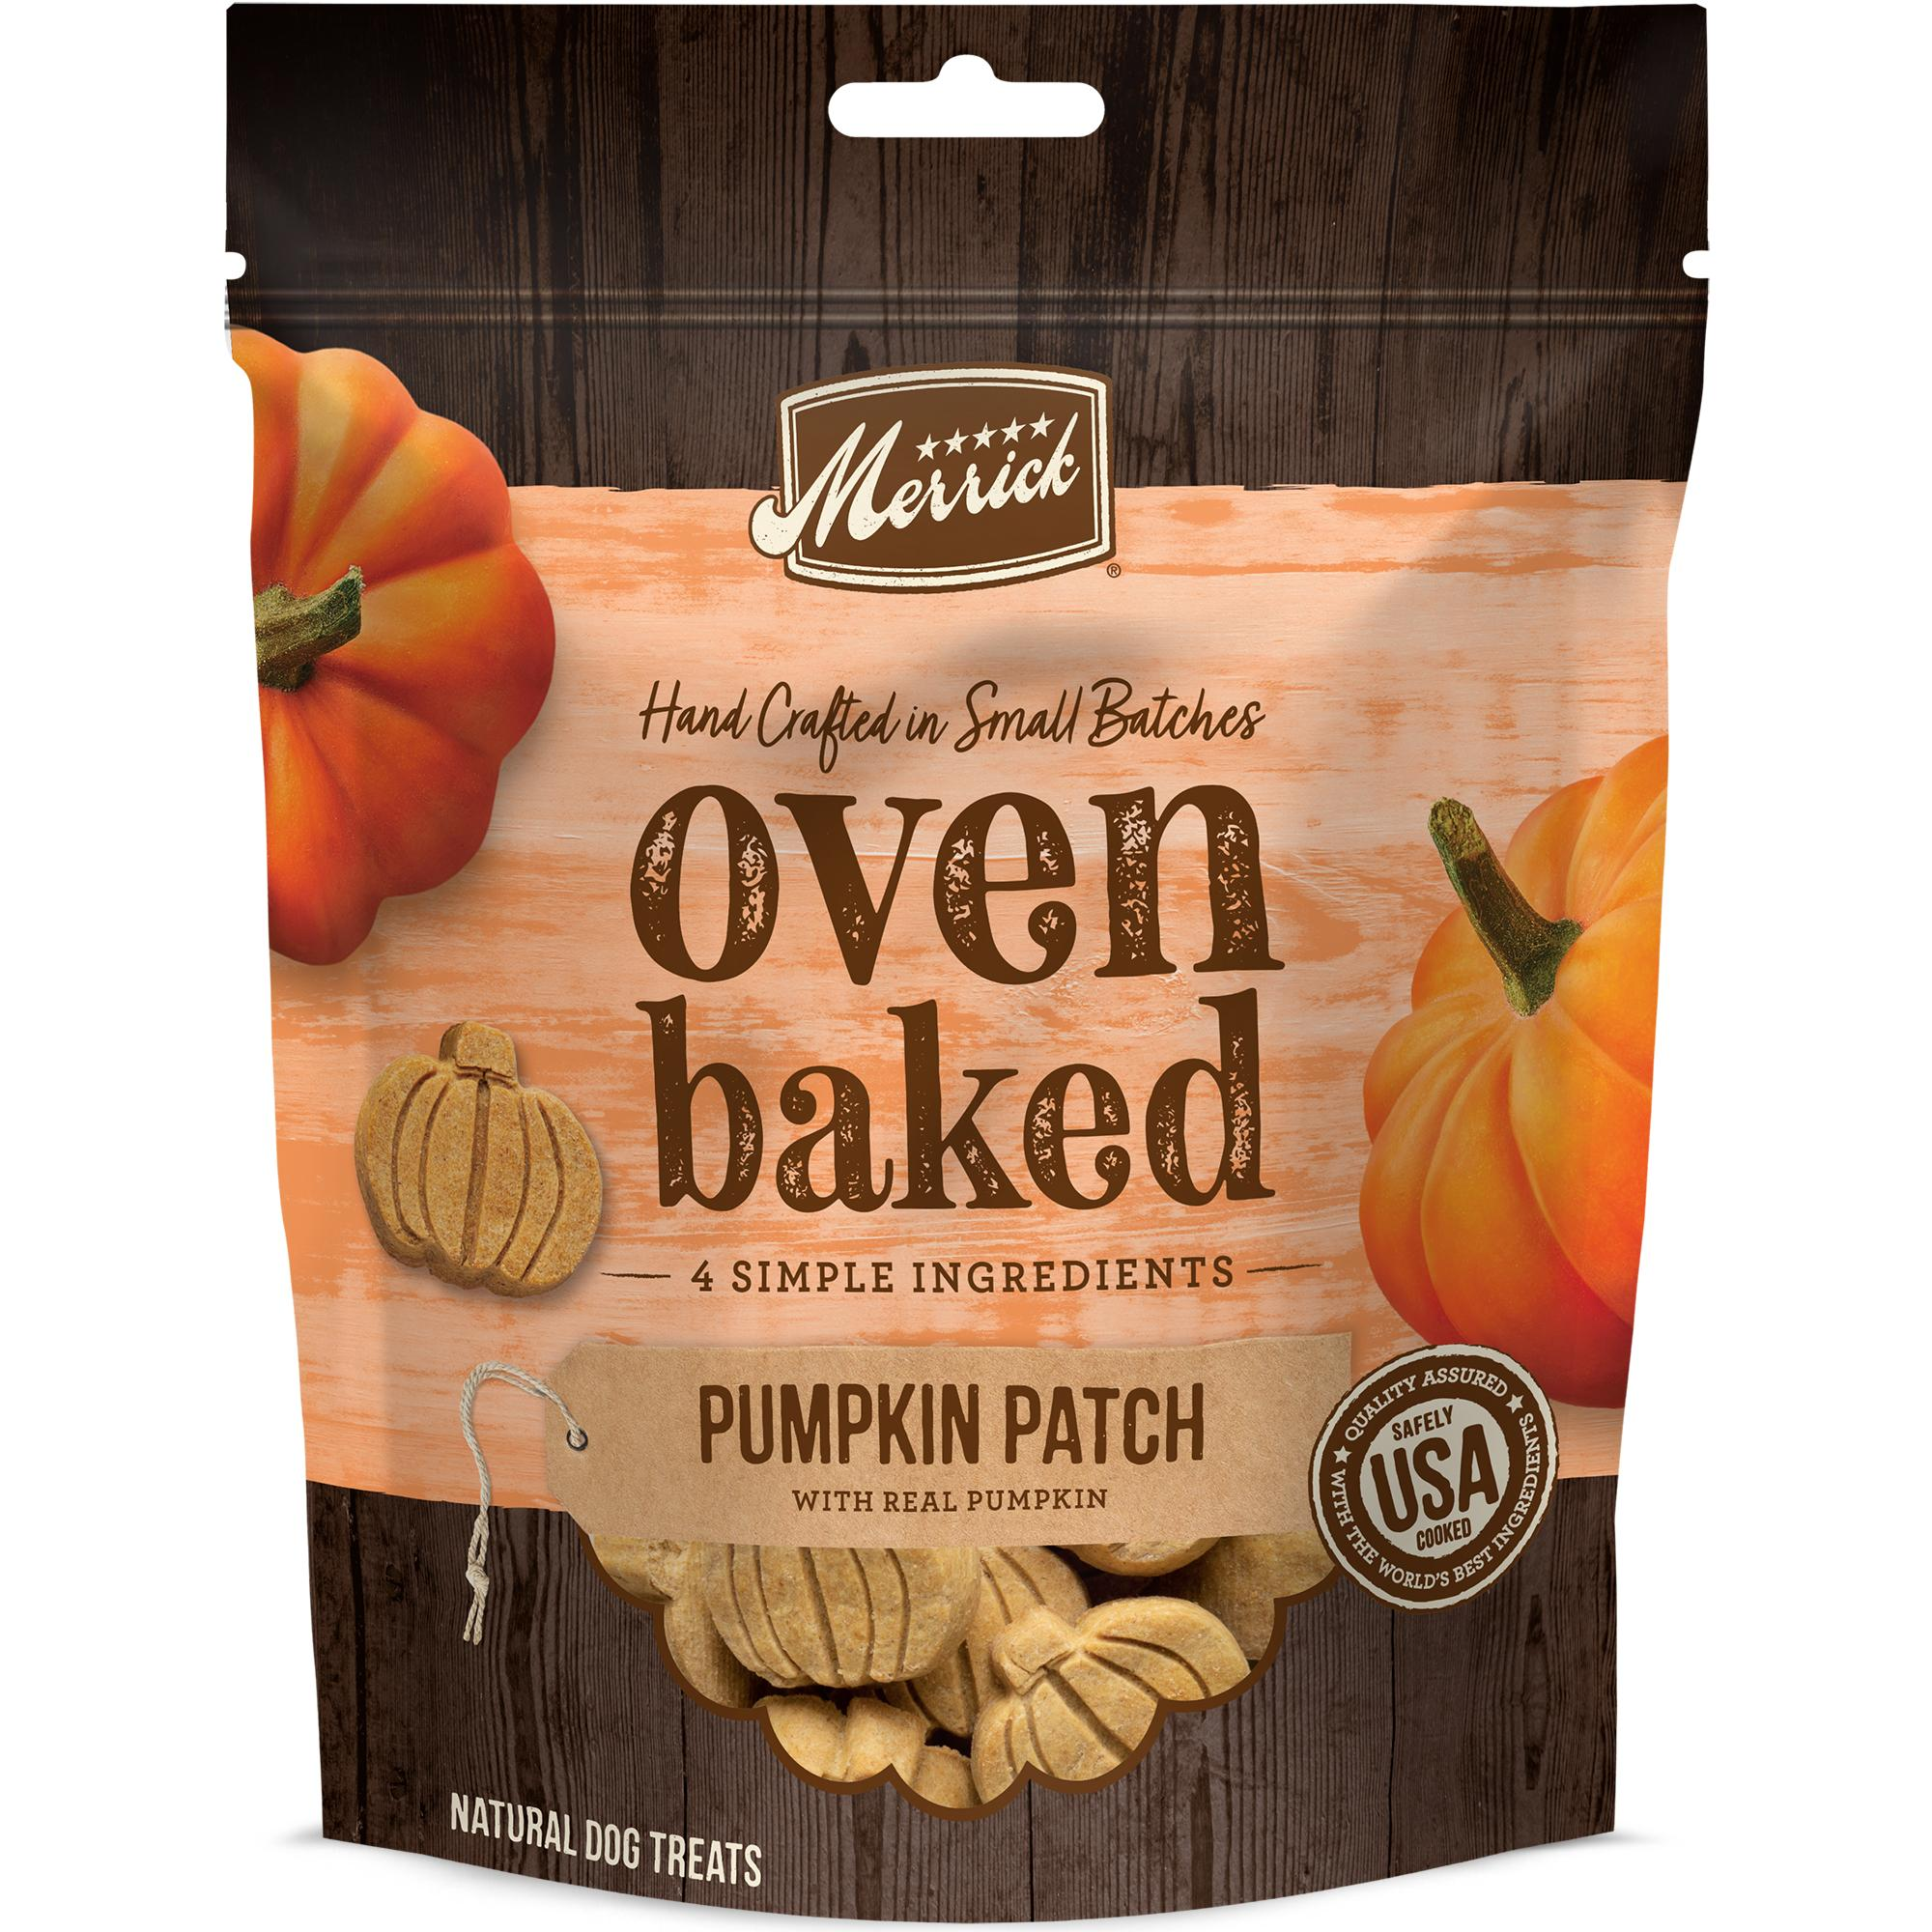 Merrick Oven Baked Pumpkin Patch Dog Treats, 11-oz